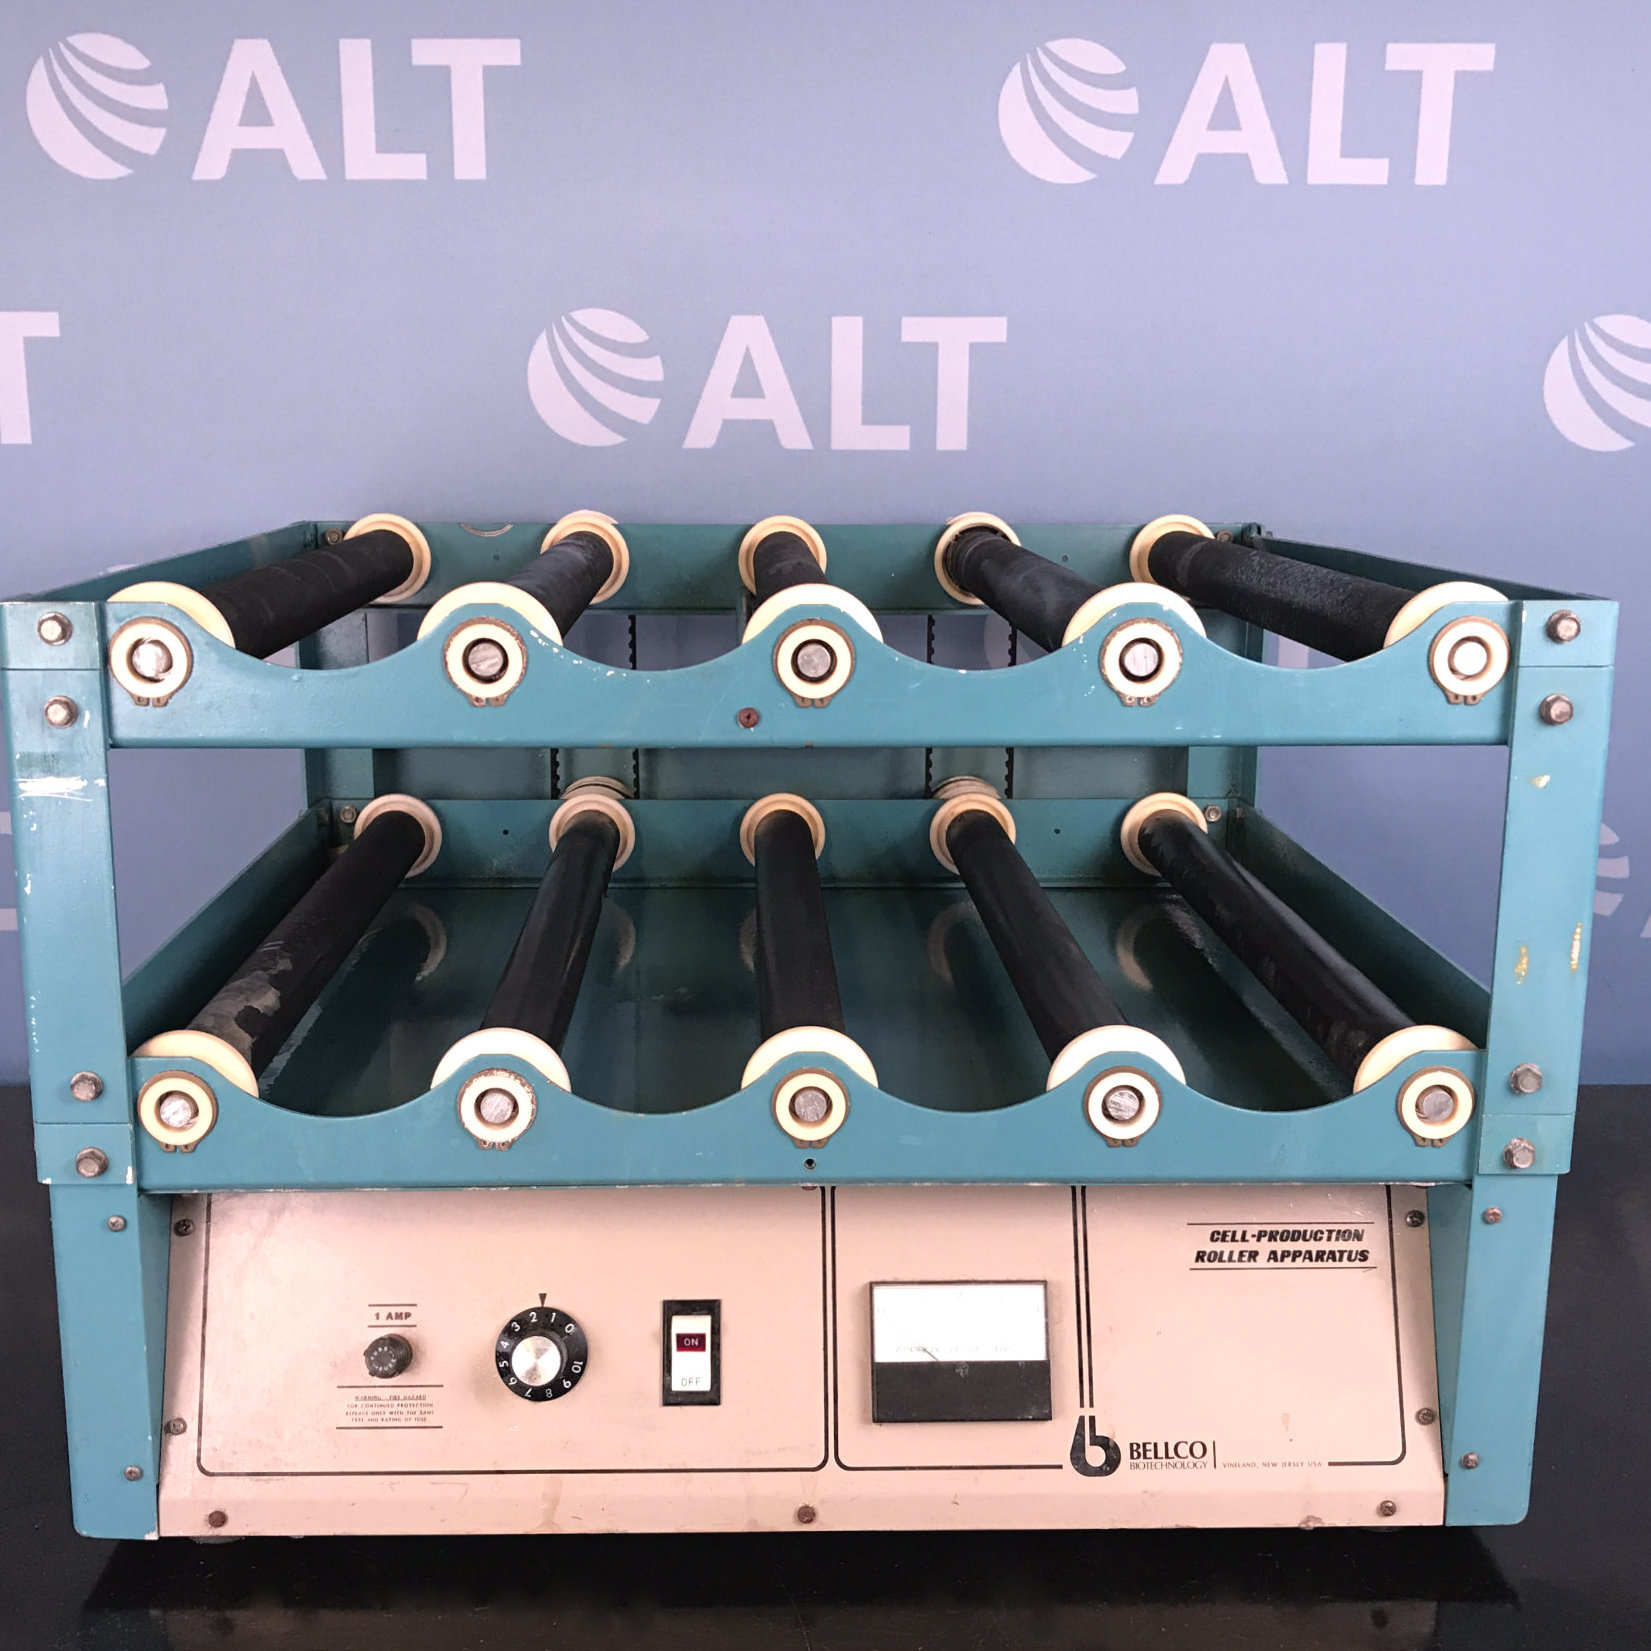 Bellco Biotechnology Cell-Production Roller Apparatus Image